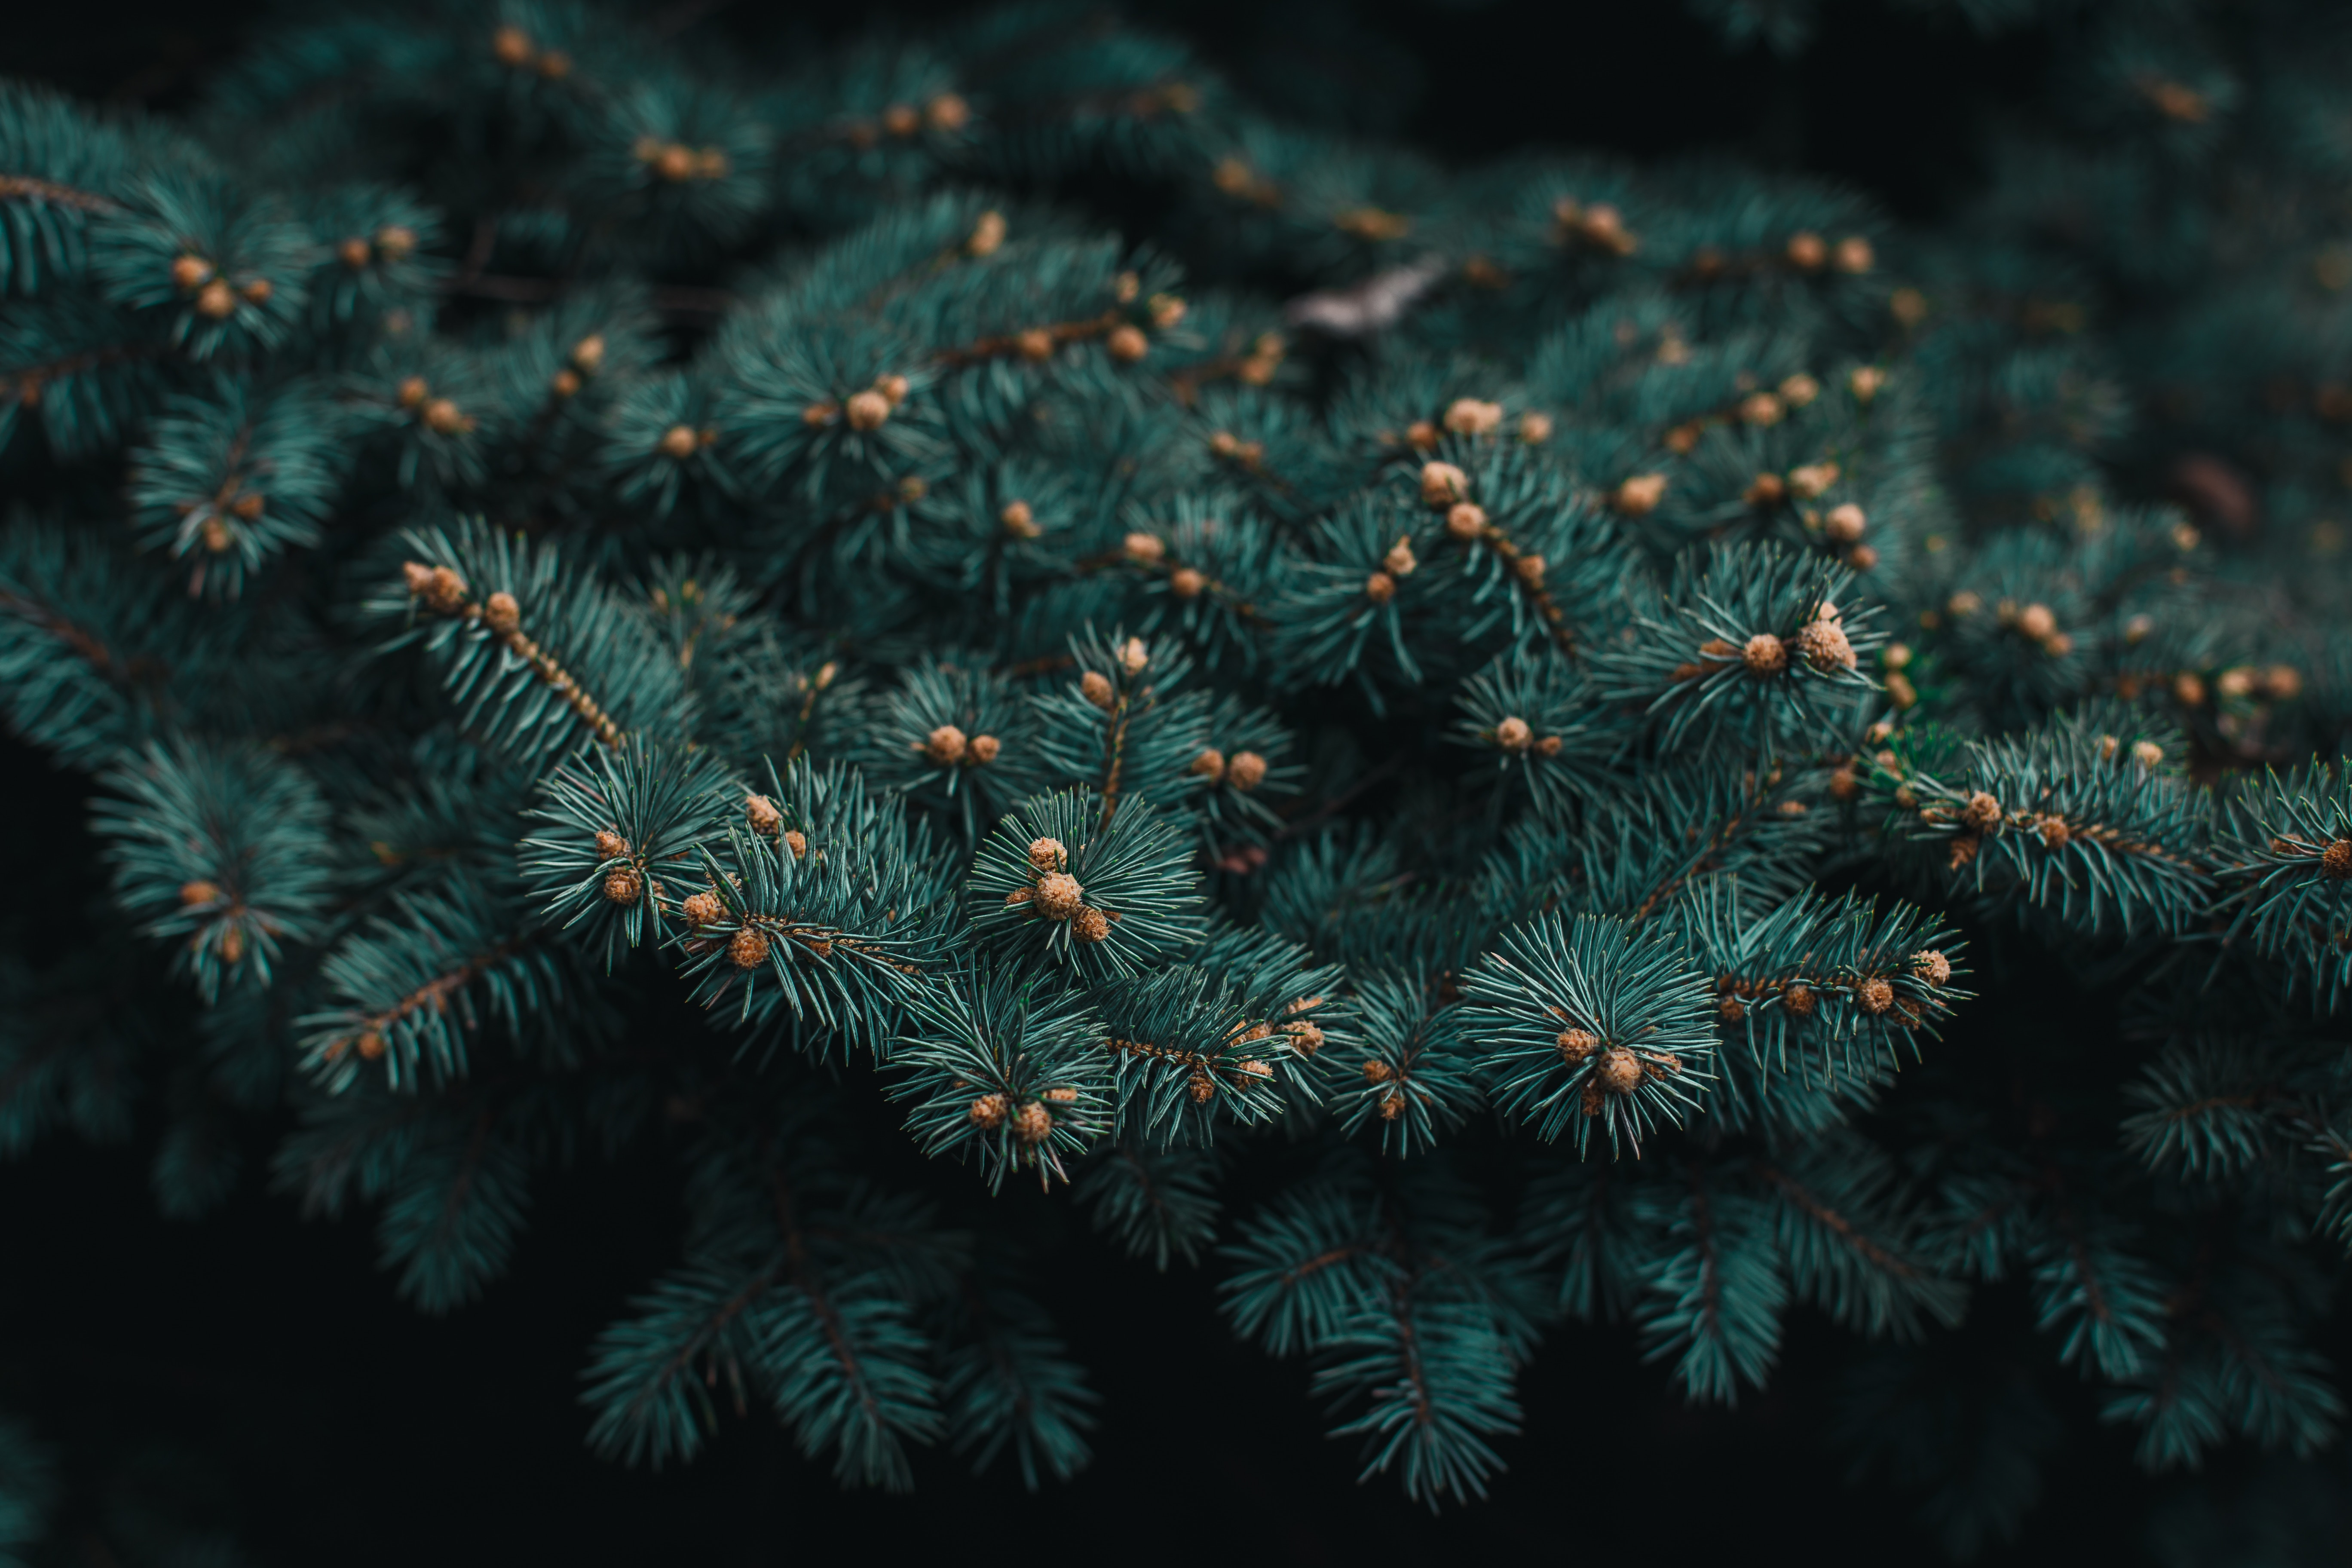 141764 download wallpaper Needle, Macro, Branch, Needles, Barbed, Spiny, Christmas Tree, Evergreen screensavers and pictures for free